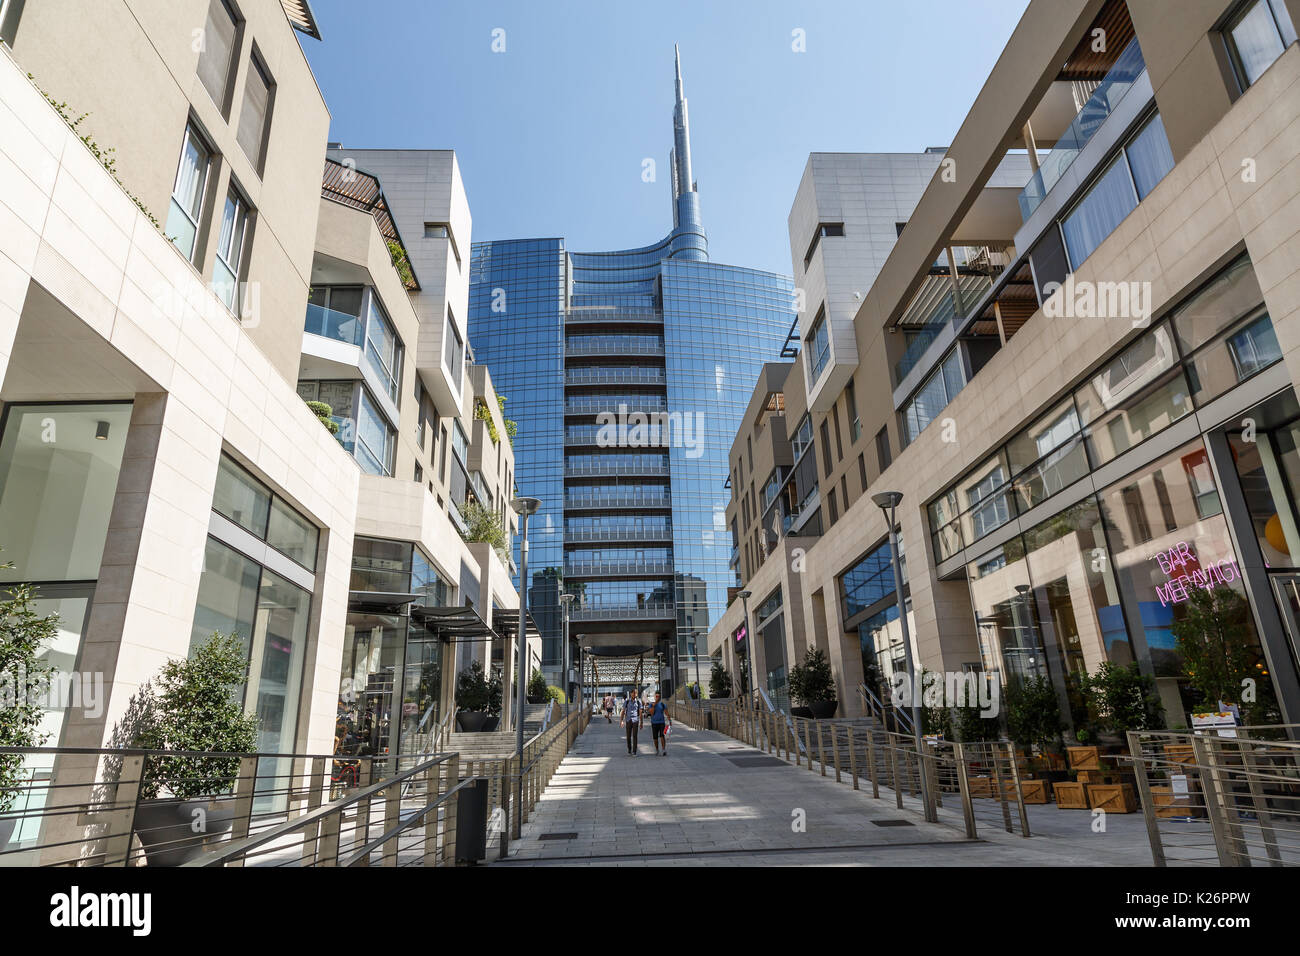 Architectures in Porta Nuova district, Milano,Italy - Stock Image